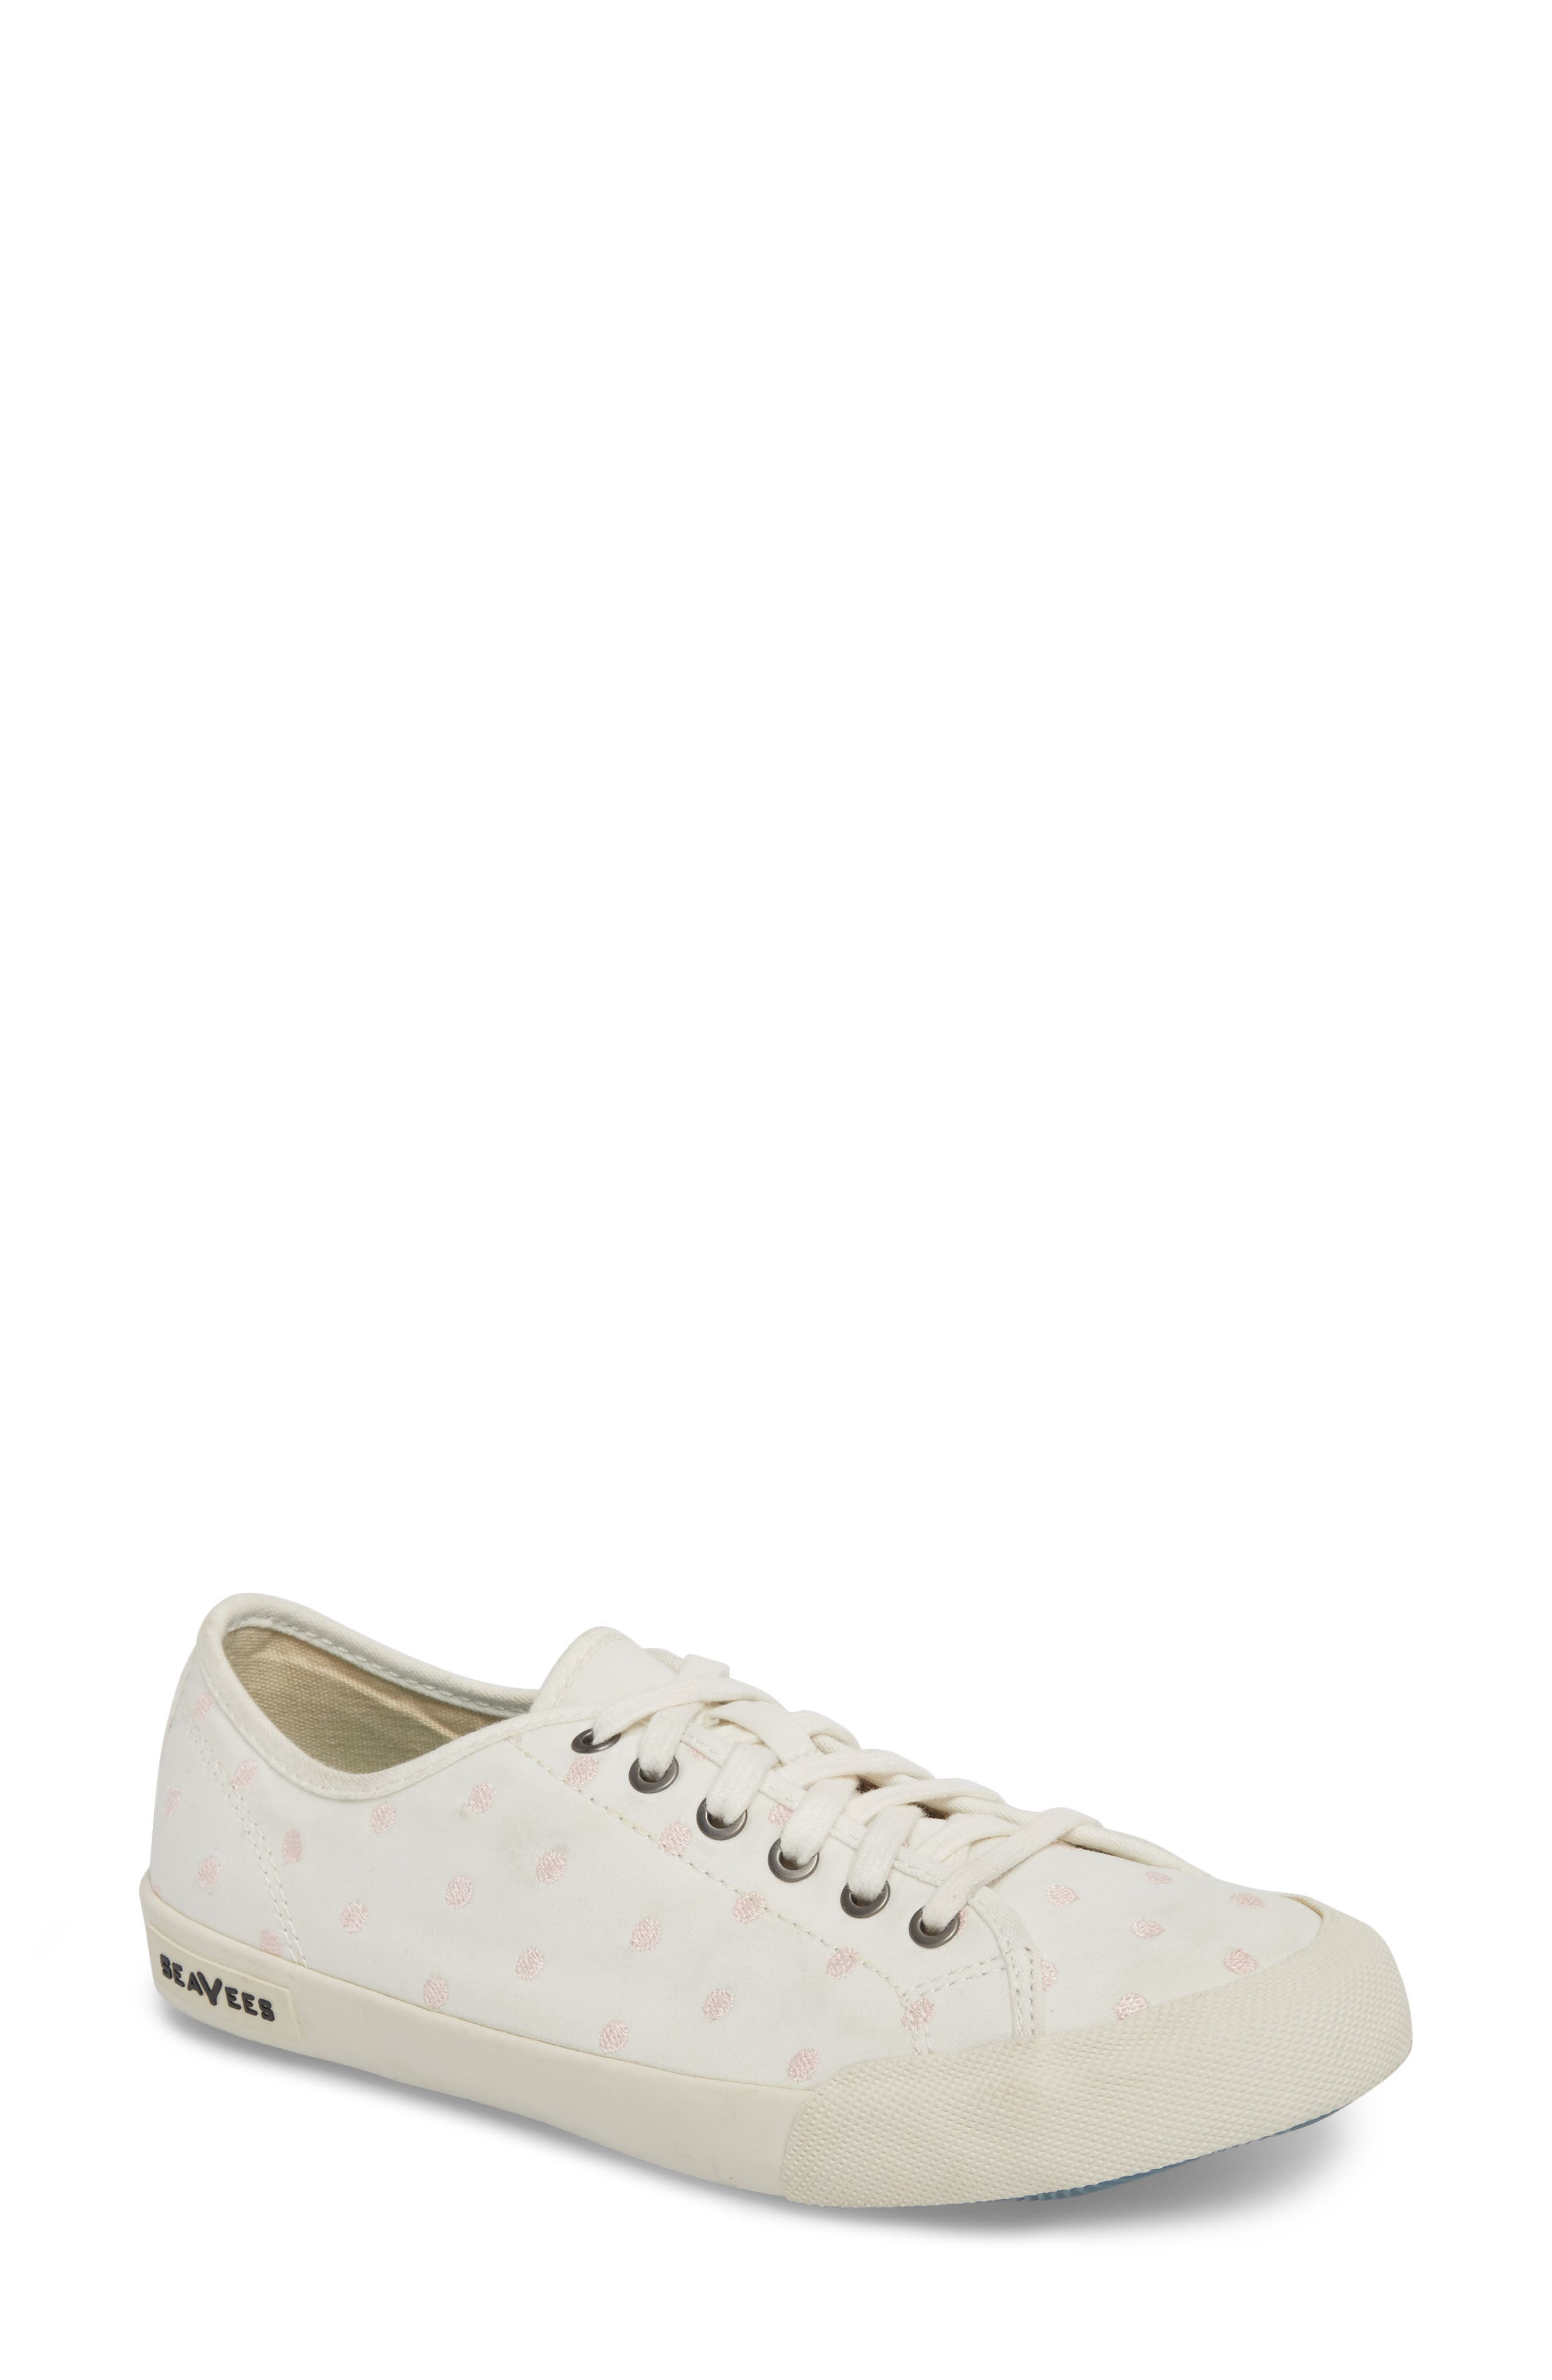 Monterey Embroidered Low Top Sneaker,                         Main,                         color, PEARL